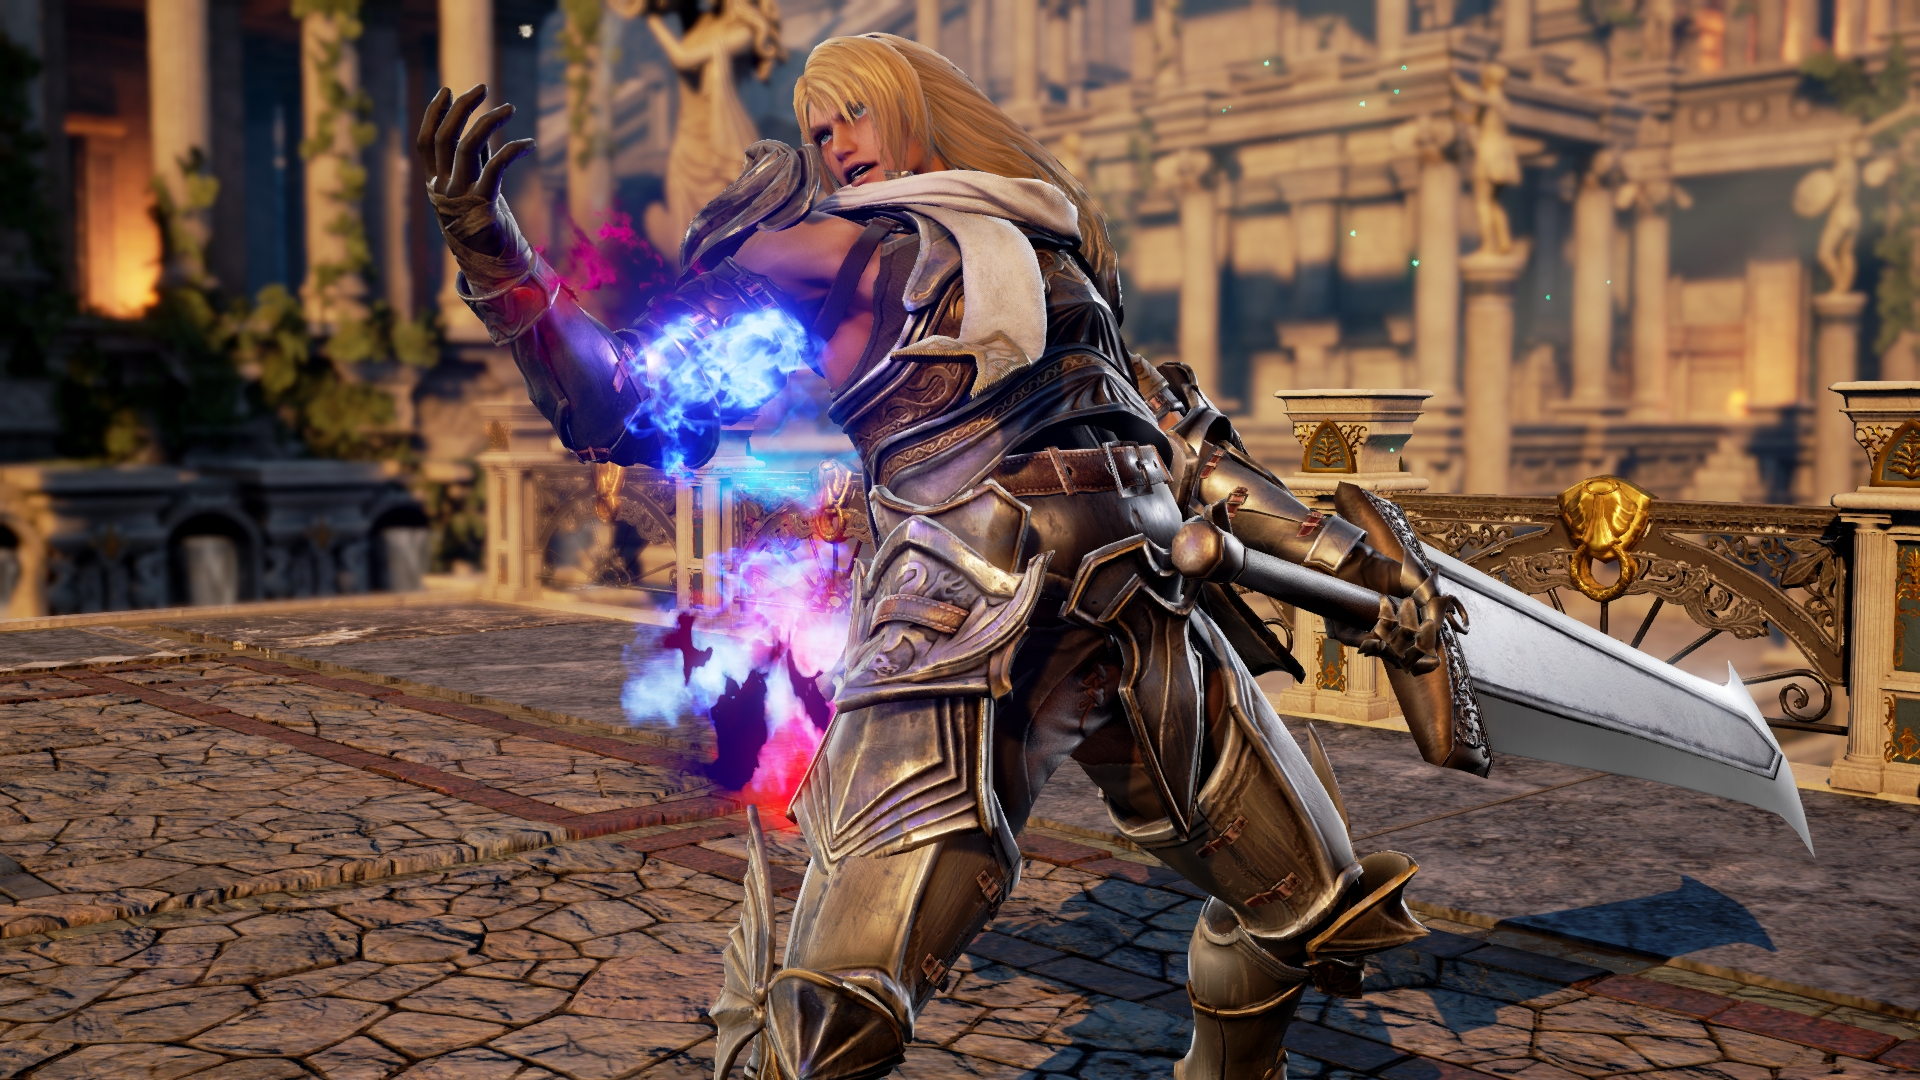 Gallery - Soul Calibur 6 Siegfried Character Reveal